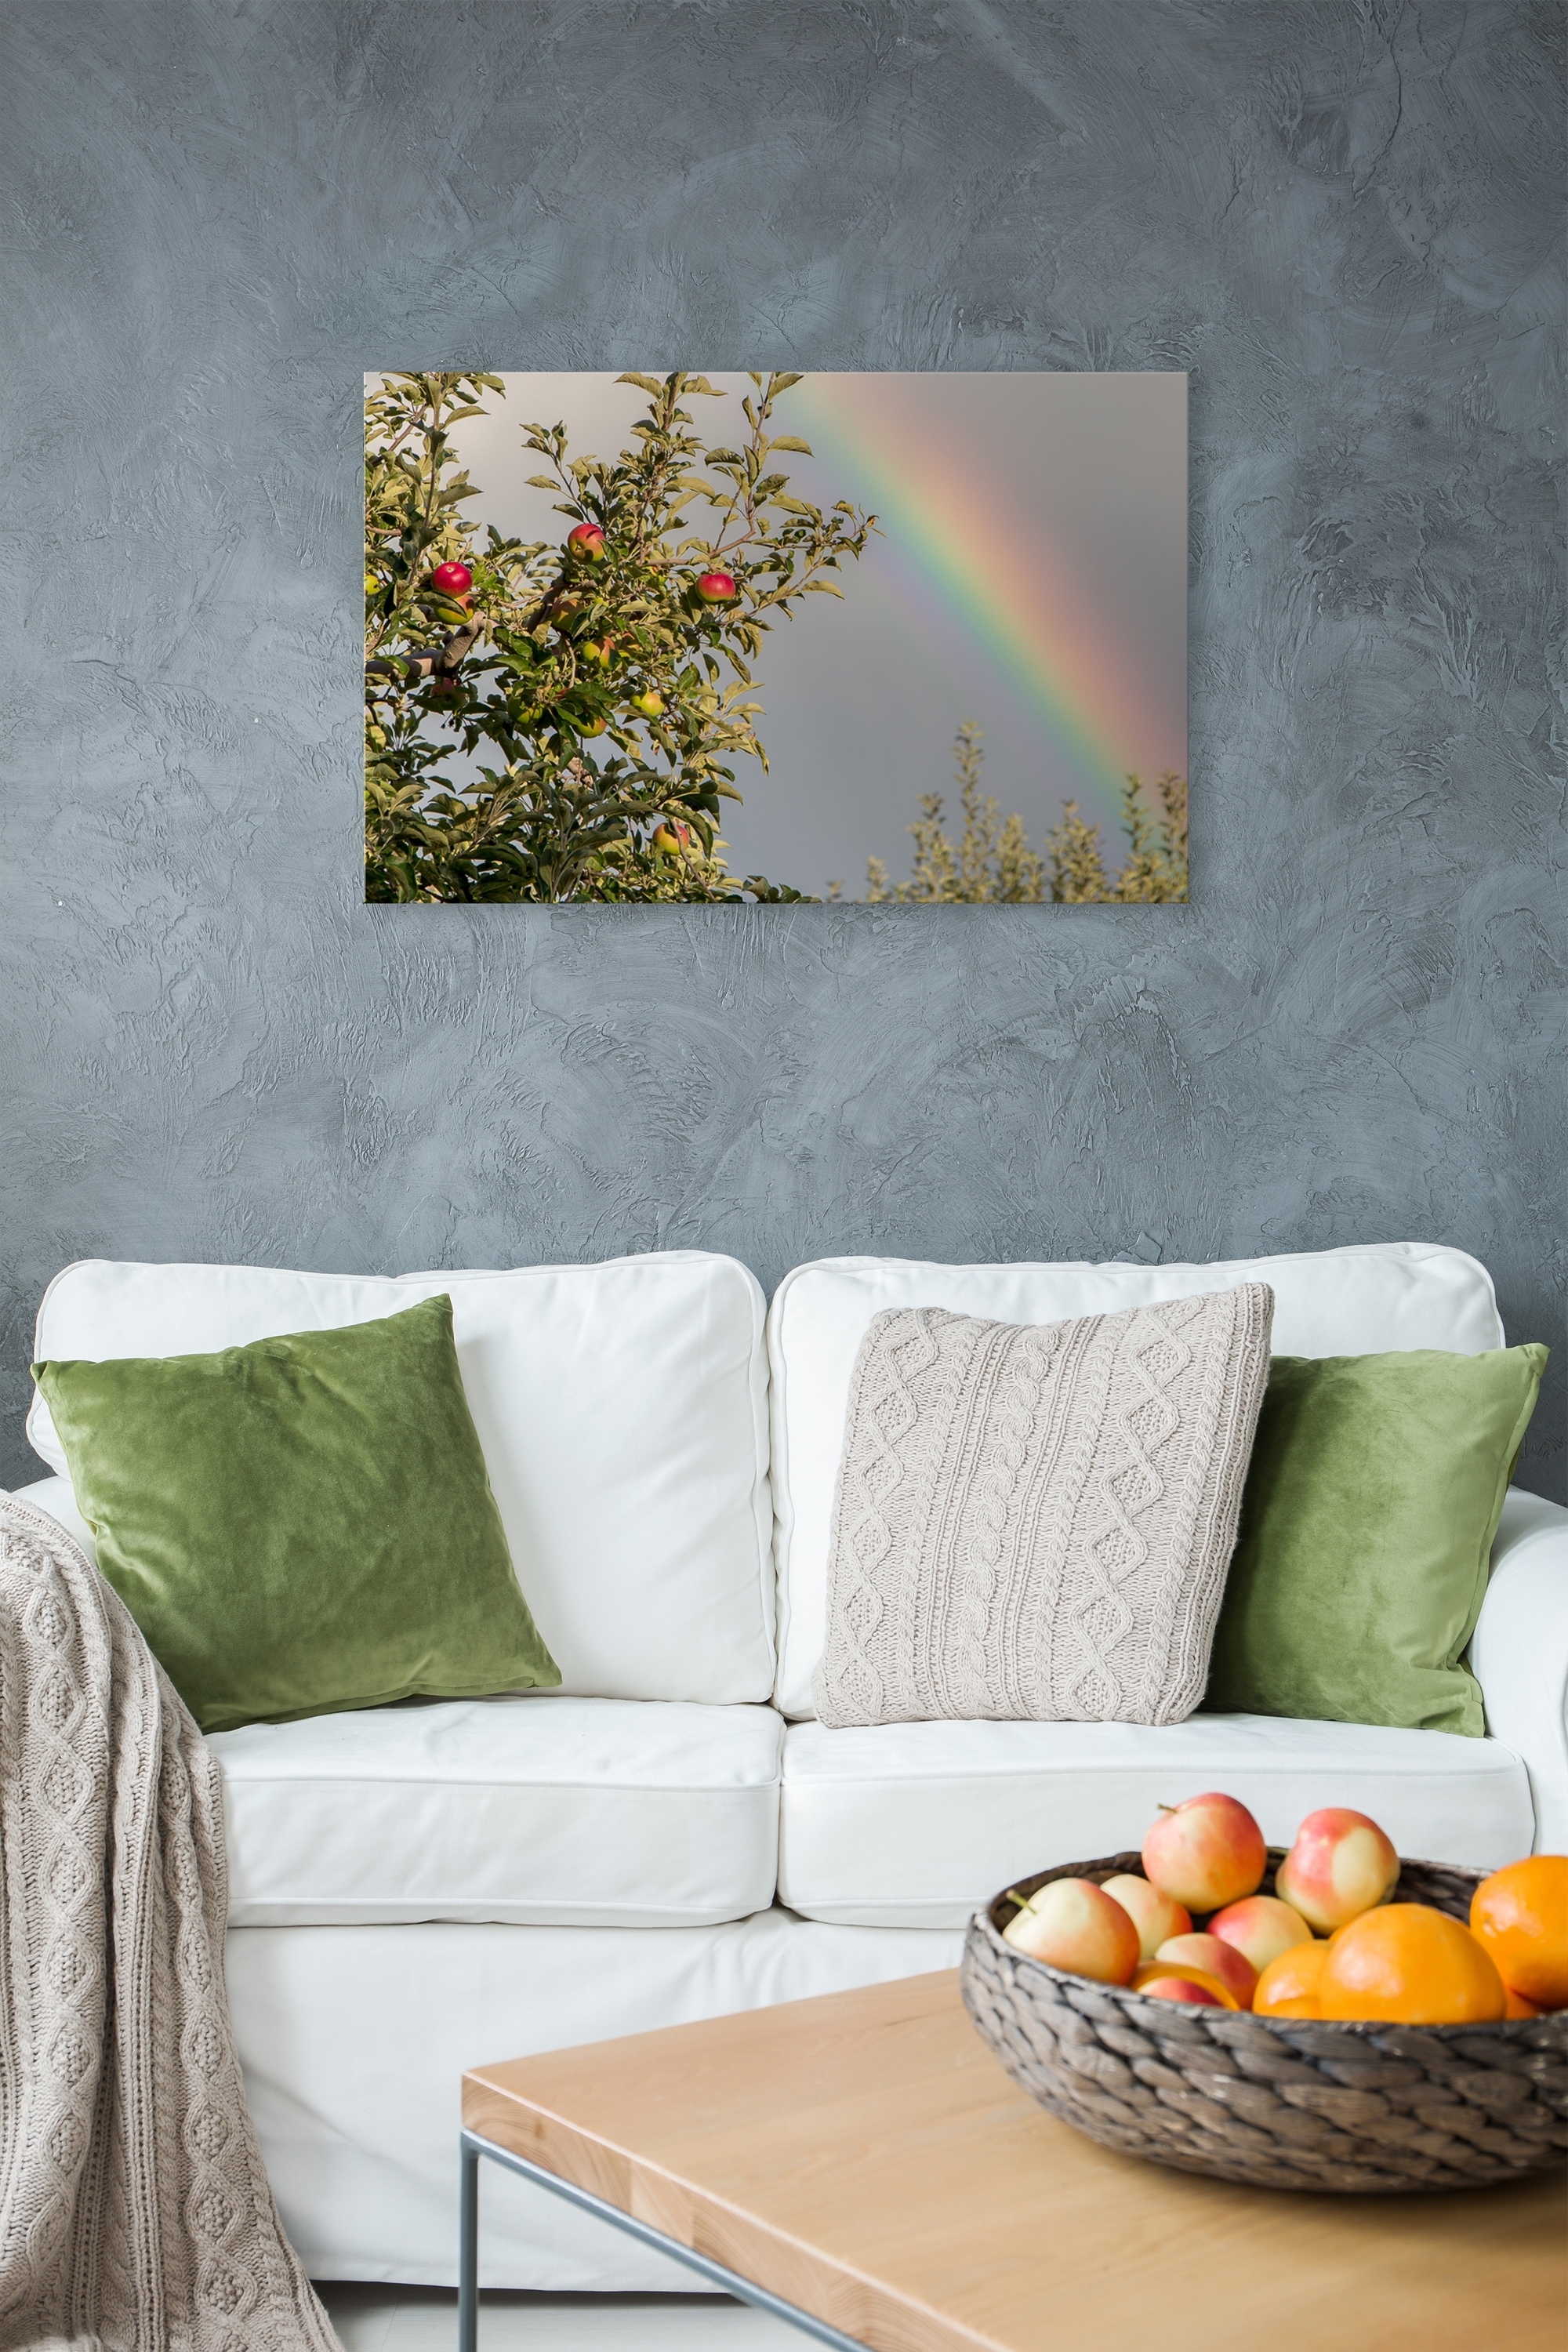 Well Liked Orchard Rainbow – Rogue Aurora Photography With Nature Wall Art (View 15 of 15)